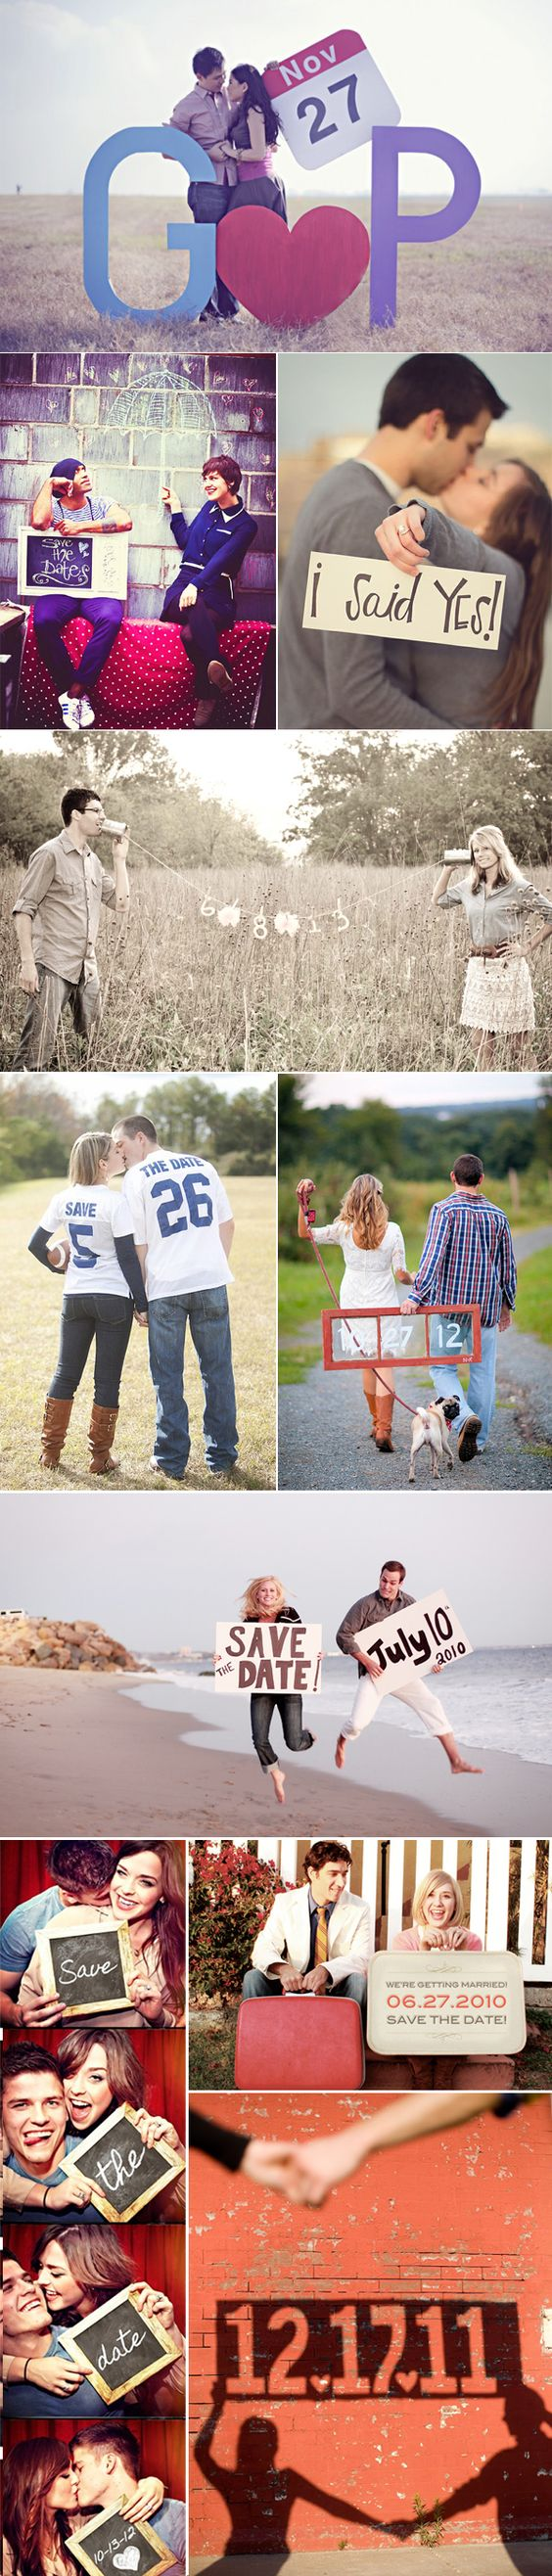 48 Save-the-Date Ideas.: Wedding Idea, Engagement Couple, Engagement Photo, Save The Date Photo, Wedding Photo, Engagement Picture, Football Jersey